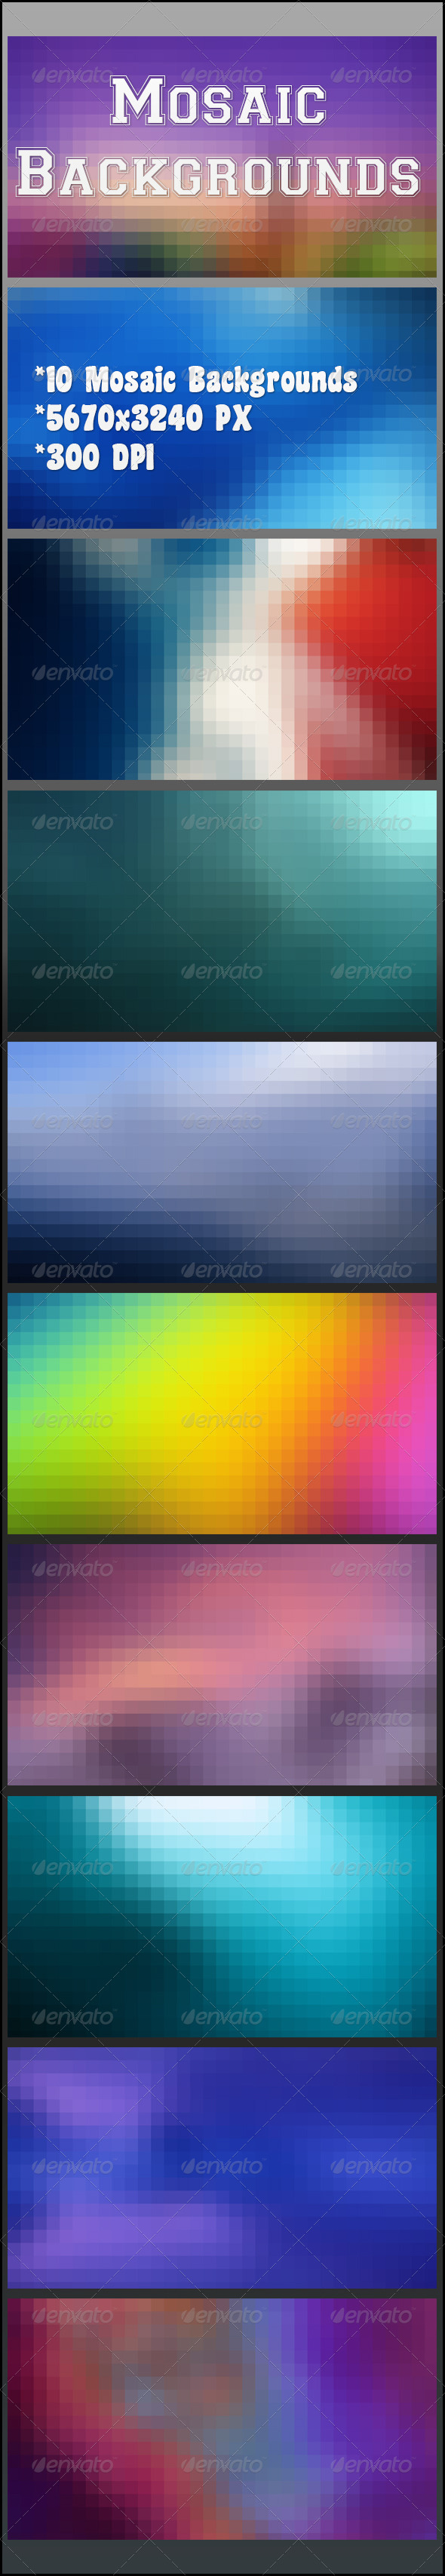 GraphicRiver Mosaic Backgrounds 8429160